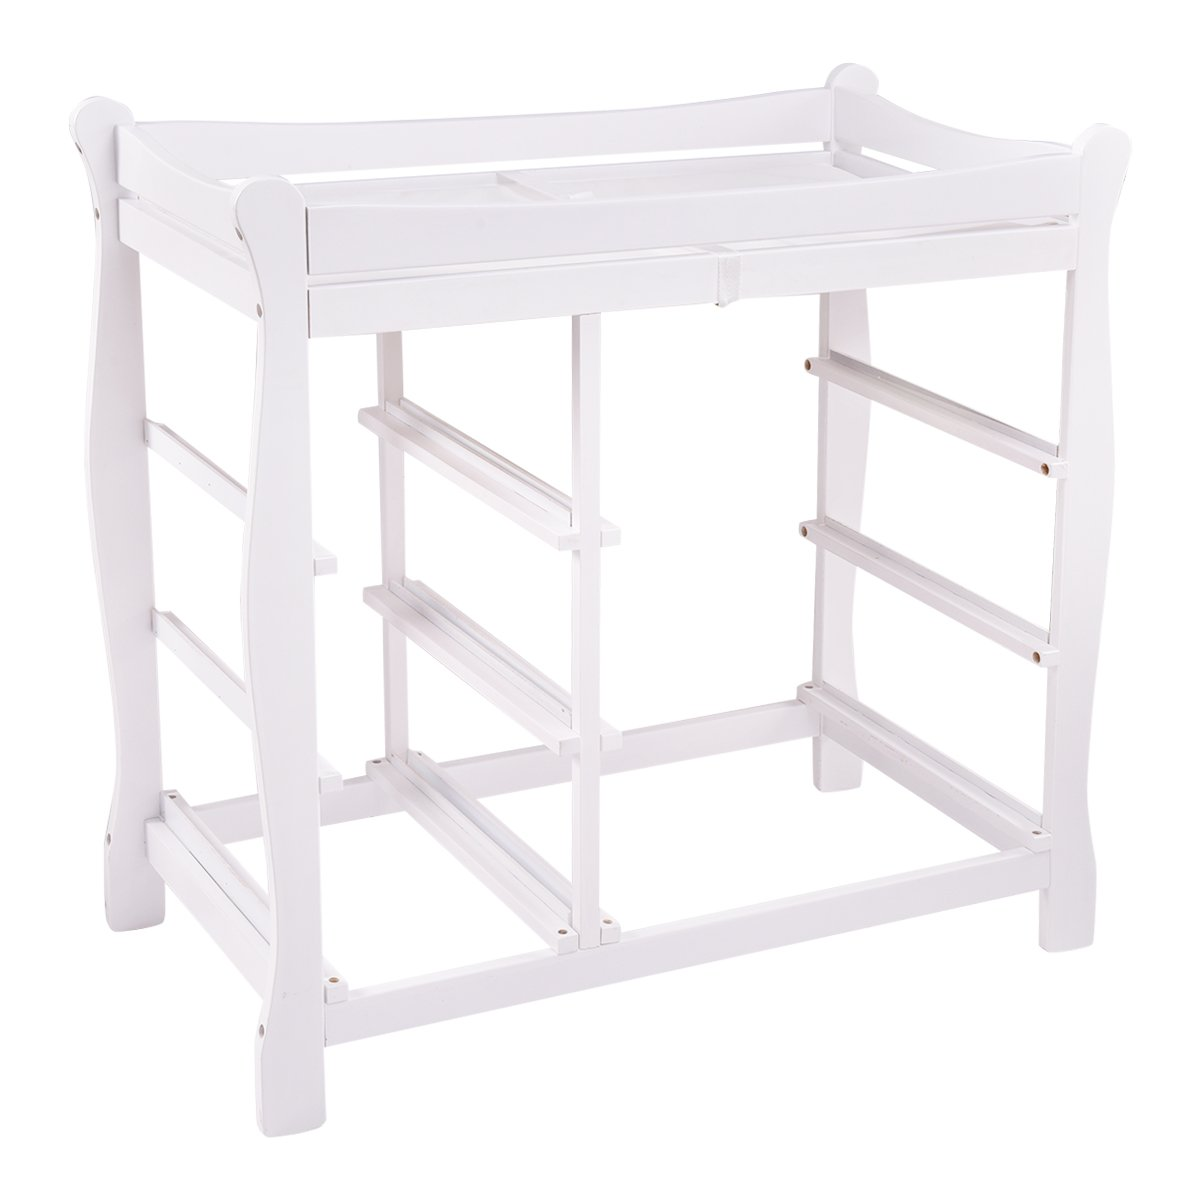 Costzon Baby Changing Table Infant Diaper Nursery Station w/6 Basket Storage Drawers (White) by Costzon (Image #2)